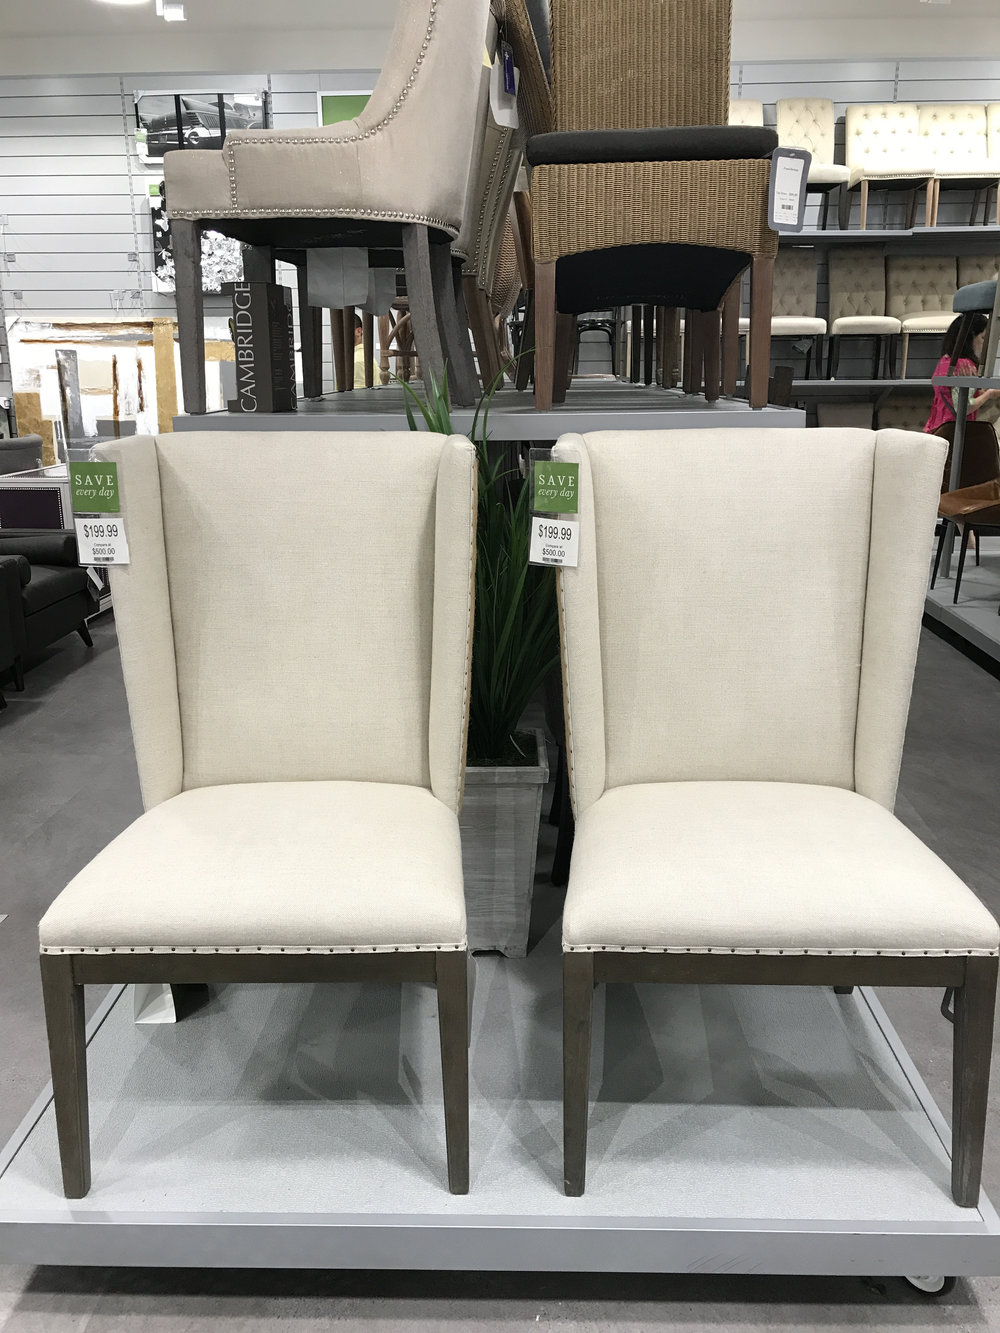 There is a great selection of dining chairs and stools, many stlyes with 5 or more of the same chair.